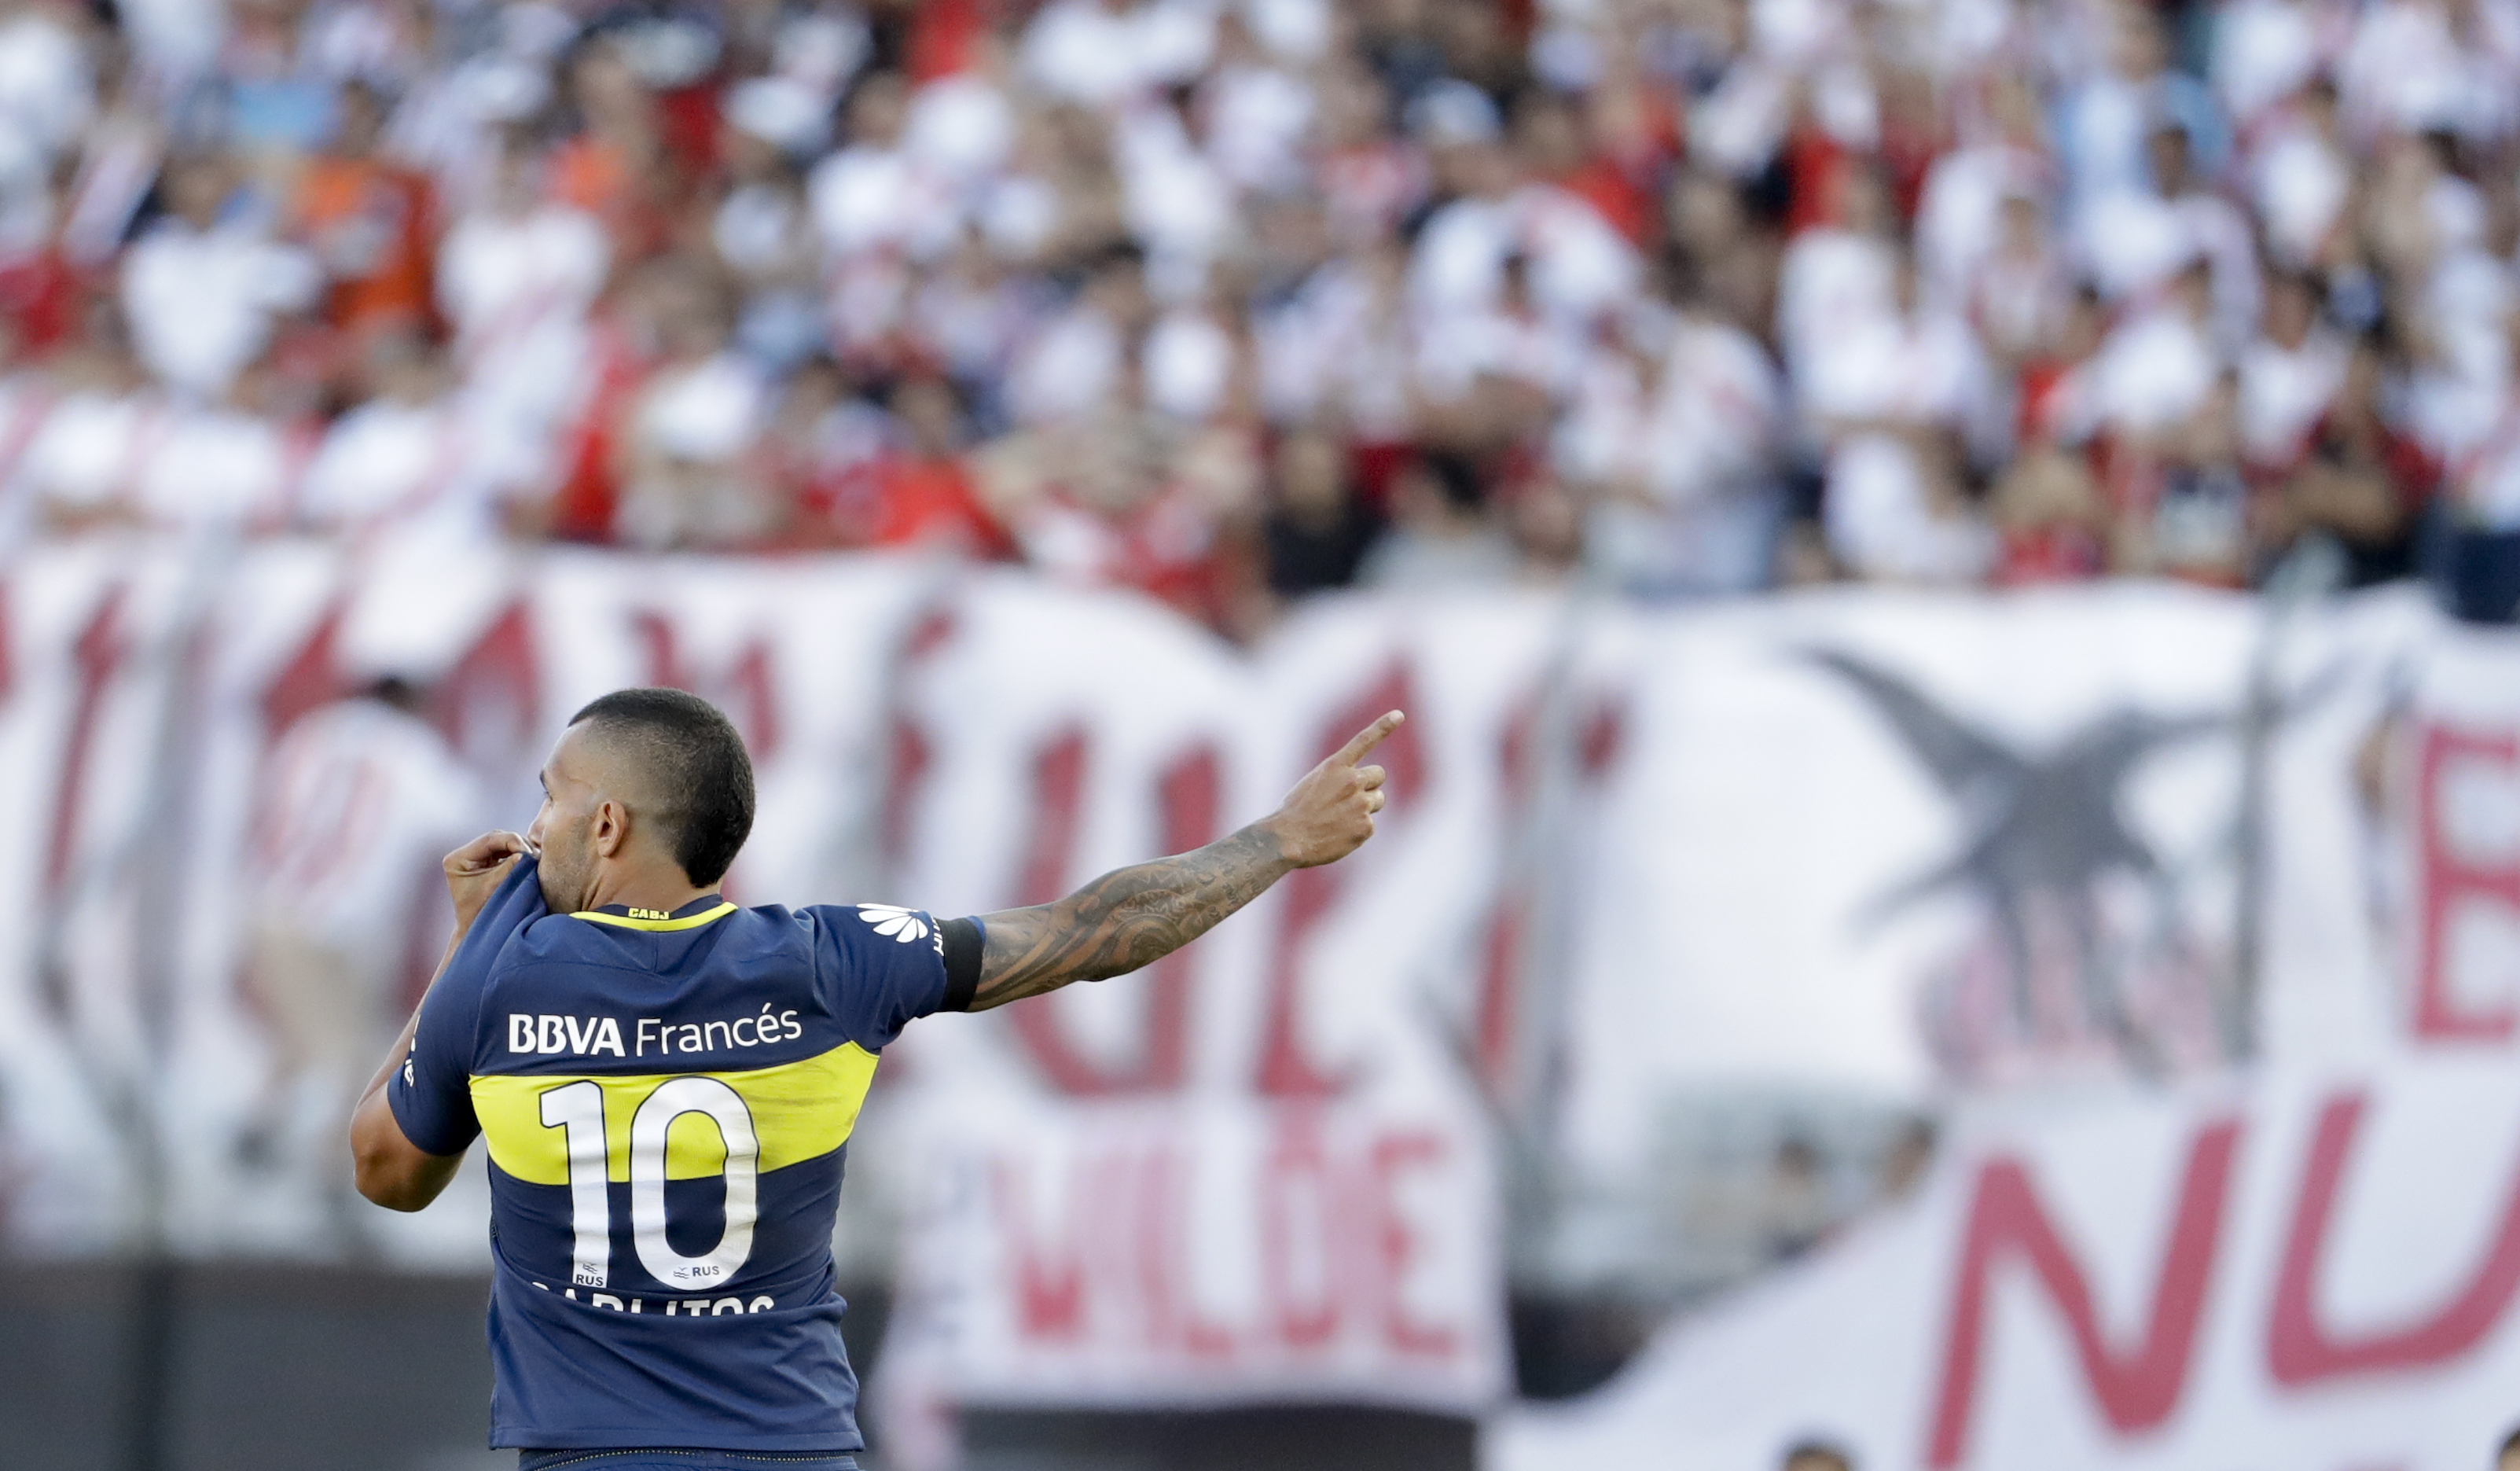 Carlos Tevez Set to Return to Boca Juniors After Flopping in China